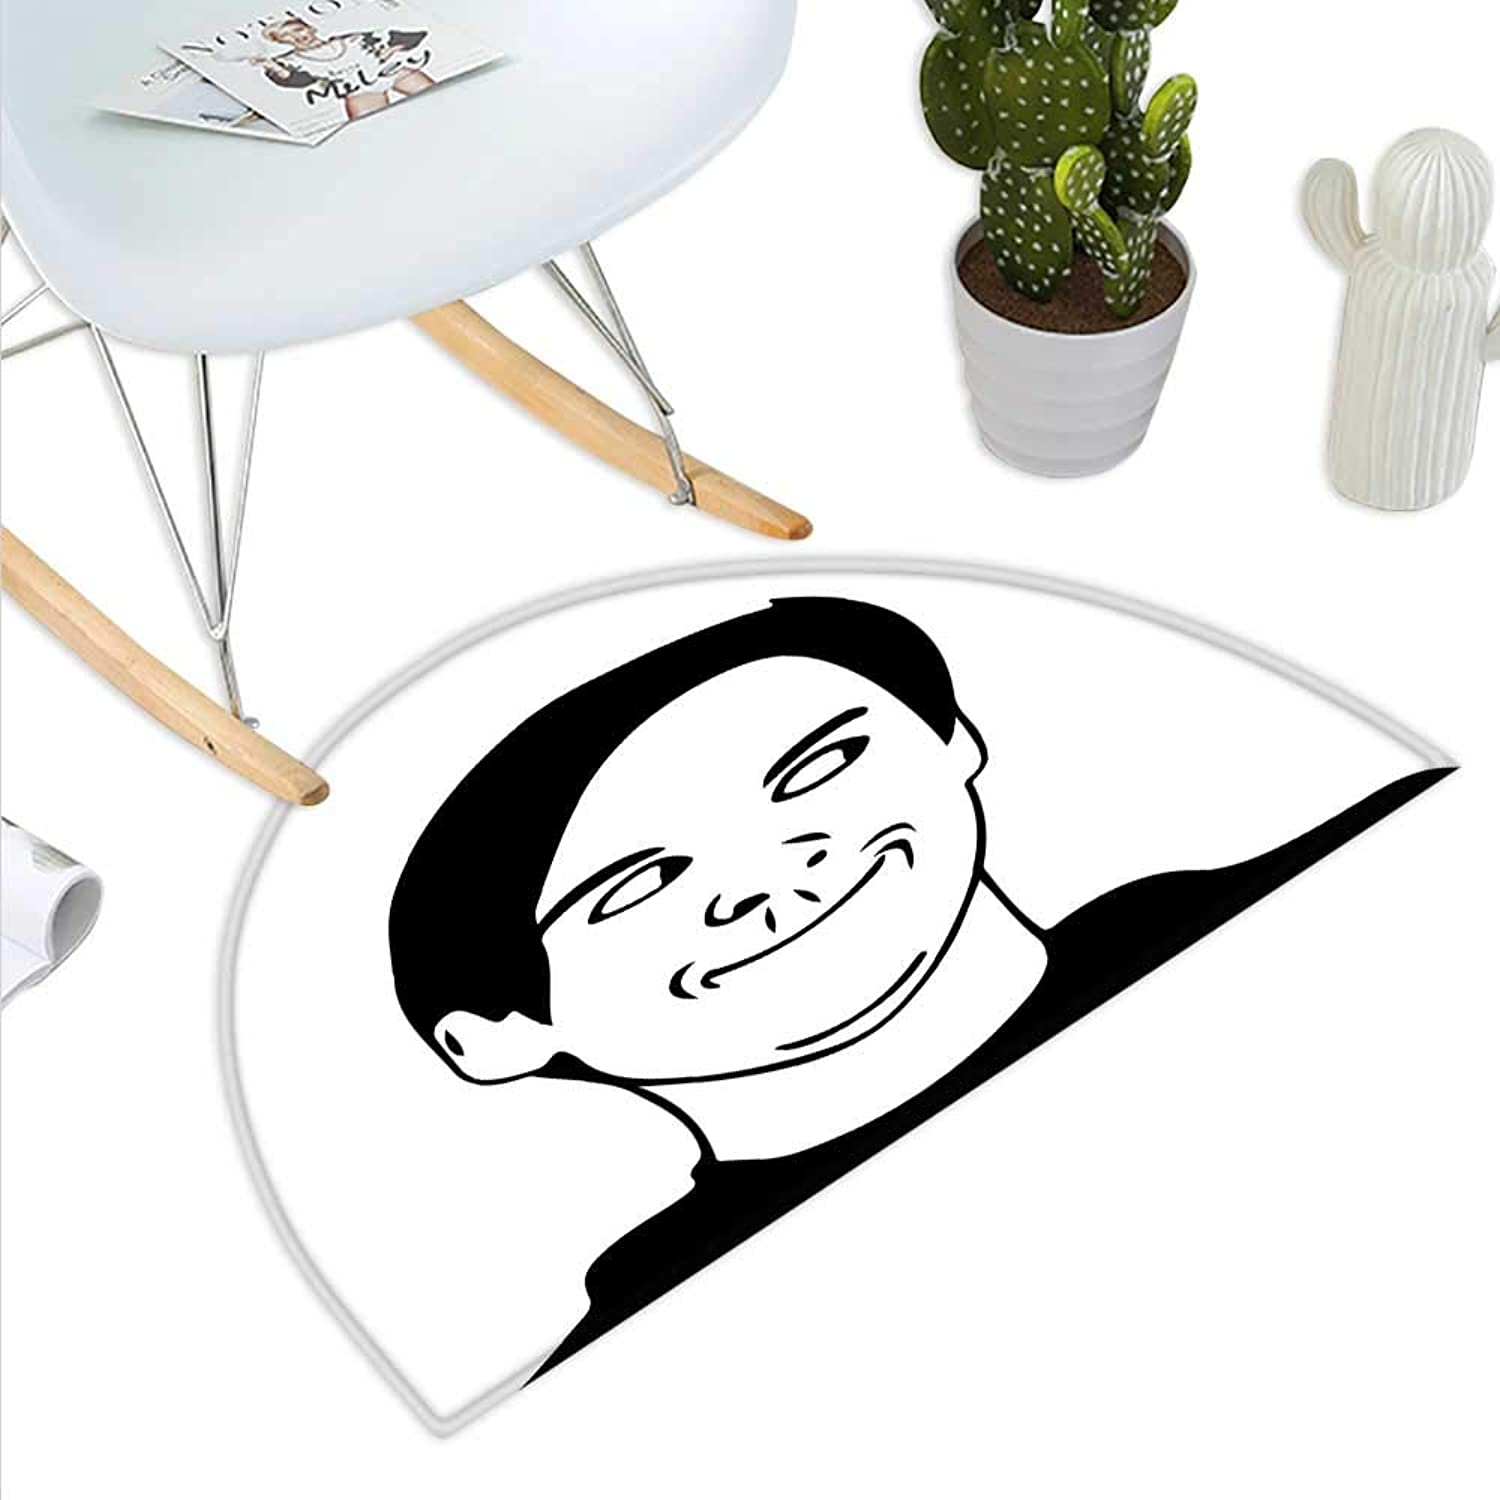 Humor Semicircle Doormat Irritating Troll Face Man with Cynical Expression Oh Crap Famous Fun Image Print Halfmoon doormats H 43.3  xD 64.9  Black and White